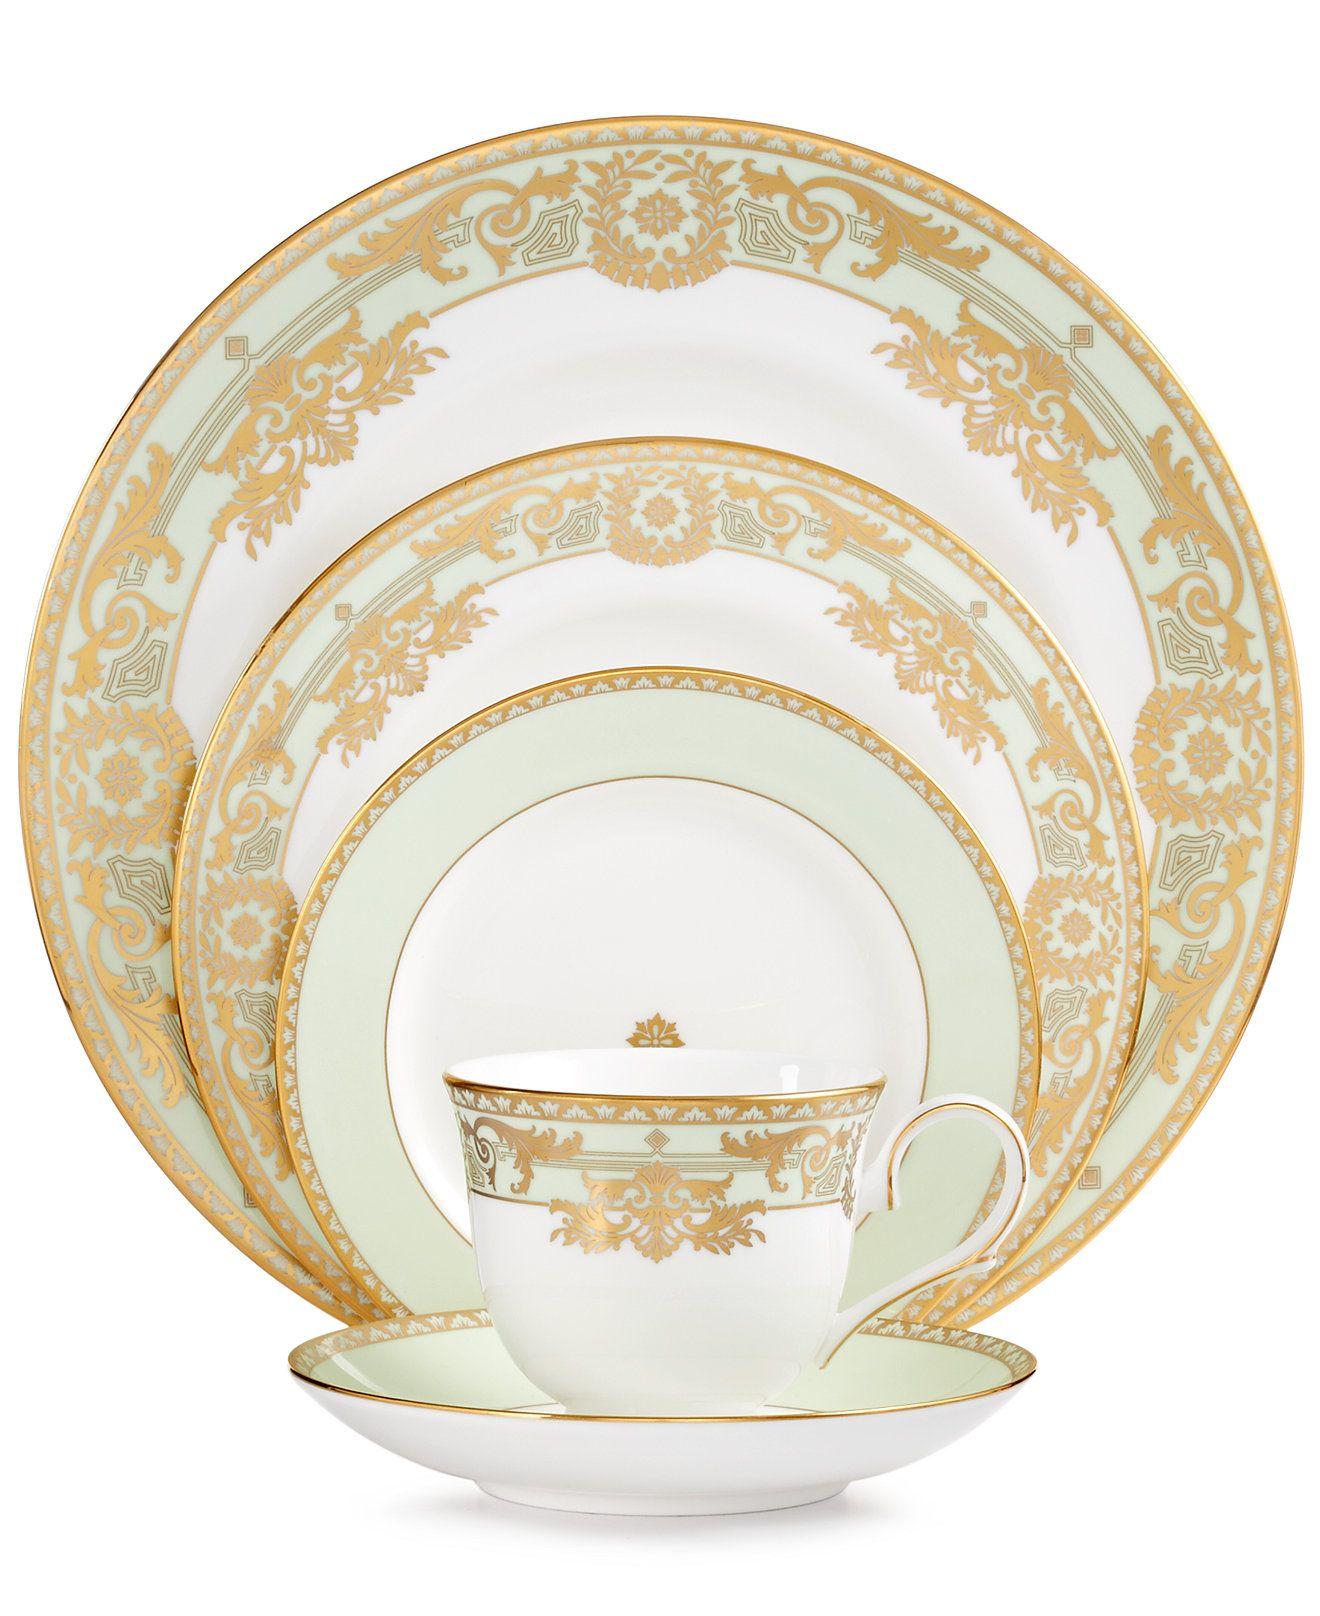 Marchesa By Lenox Rococo Leaf 5 Piece Place Setting